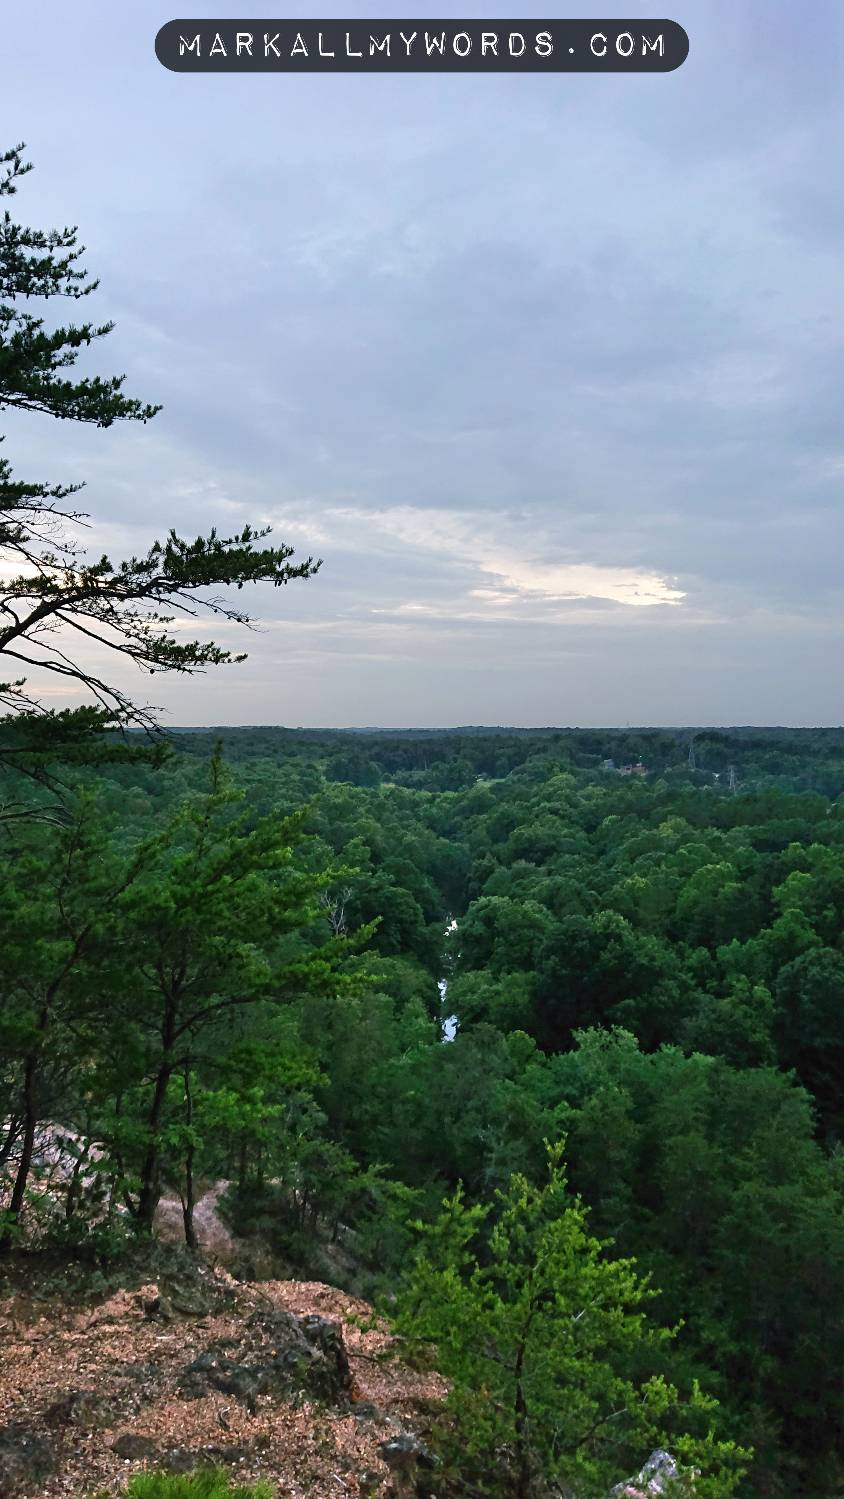 Eno River from Overlook, surrounded by lush forest